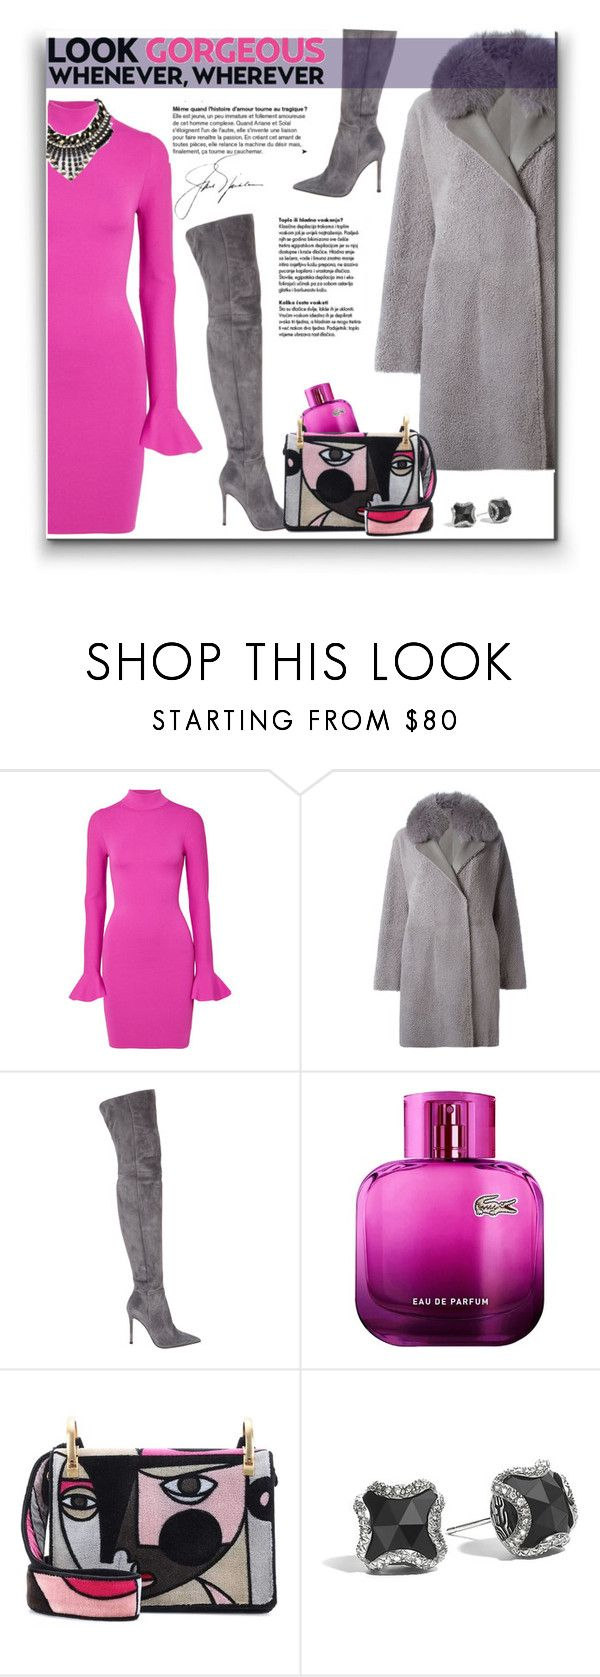 """289. Winter Style with Over-the-knee boots"" by milva-bg ❤ liked on Polyvore featuring MICHAEL Michael Kors, Guy Laroche, Gianvito Rossi, Lacoste and Prada"